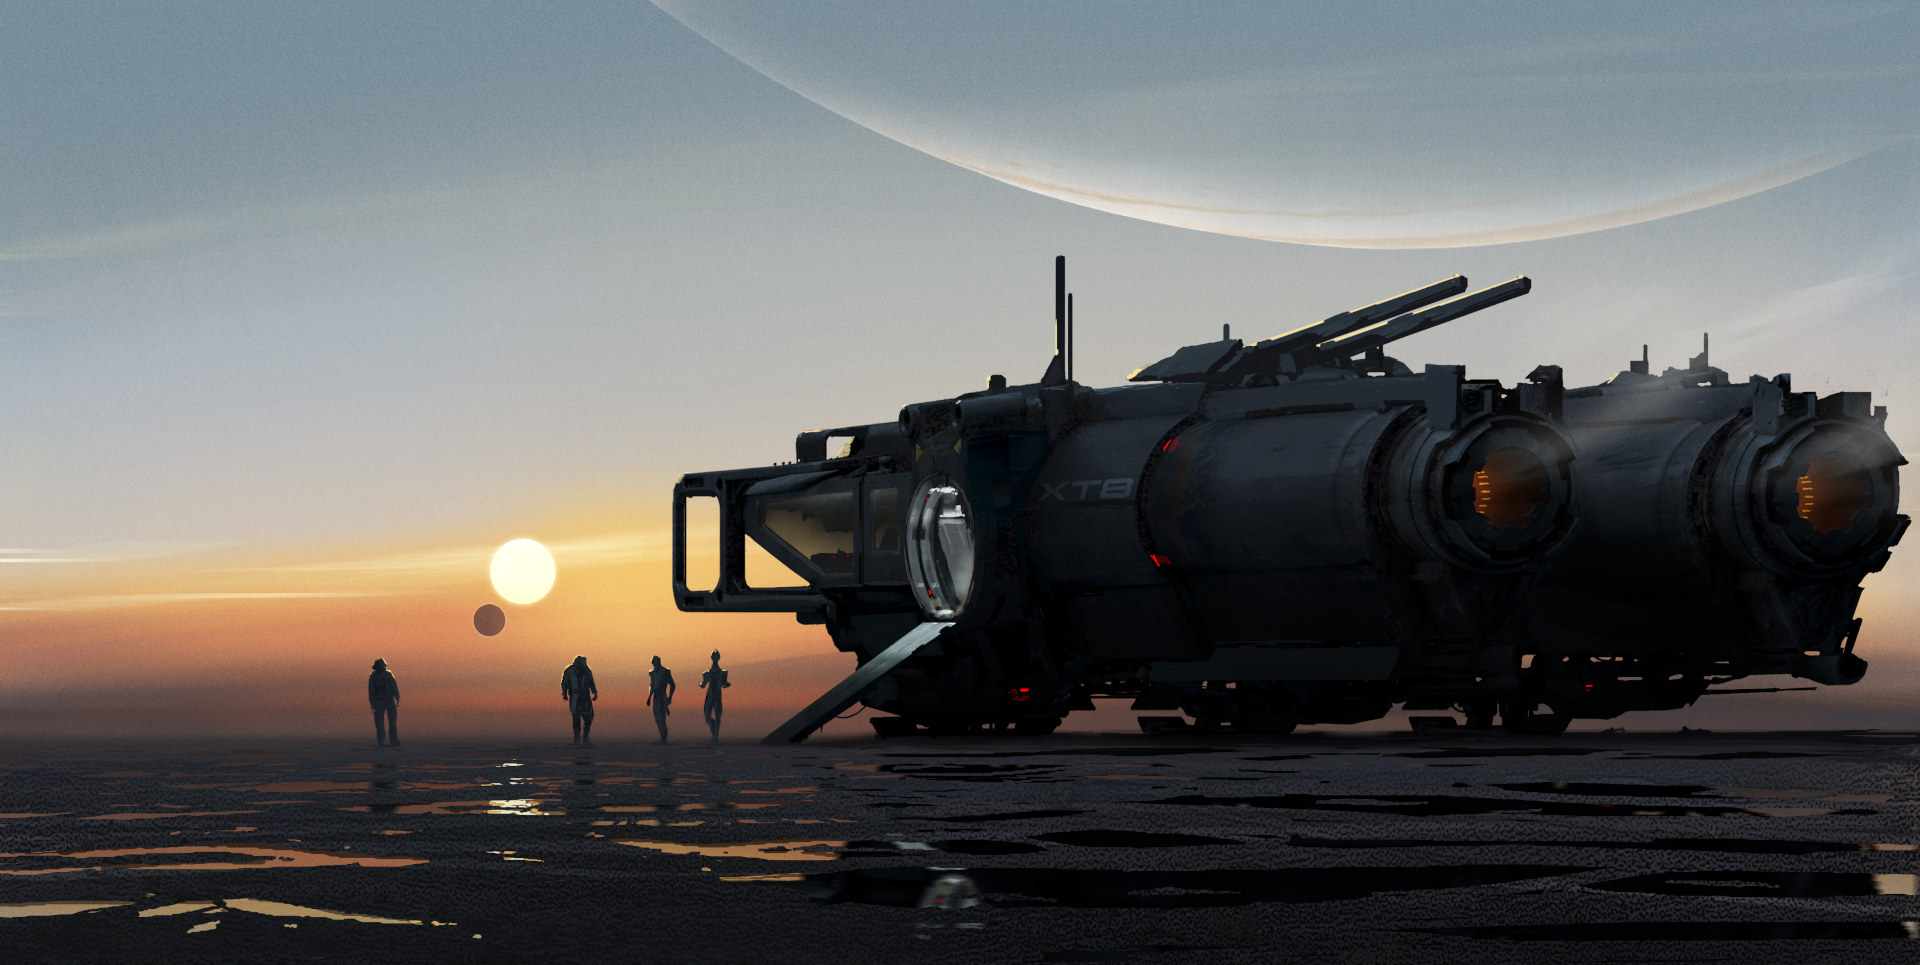 """Concept art for the new Mass Effect, titled """"mud skipper"""""""